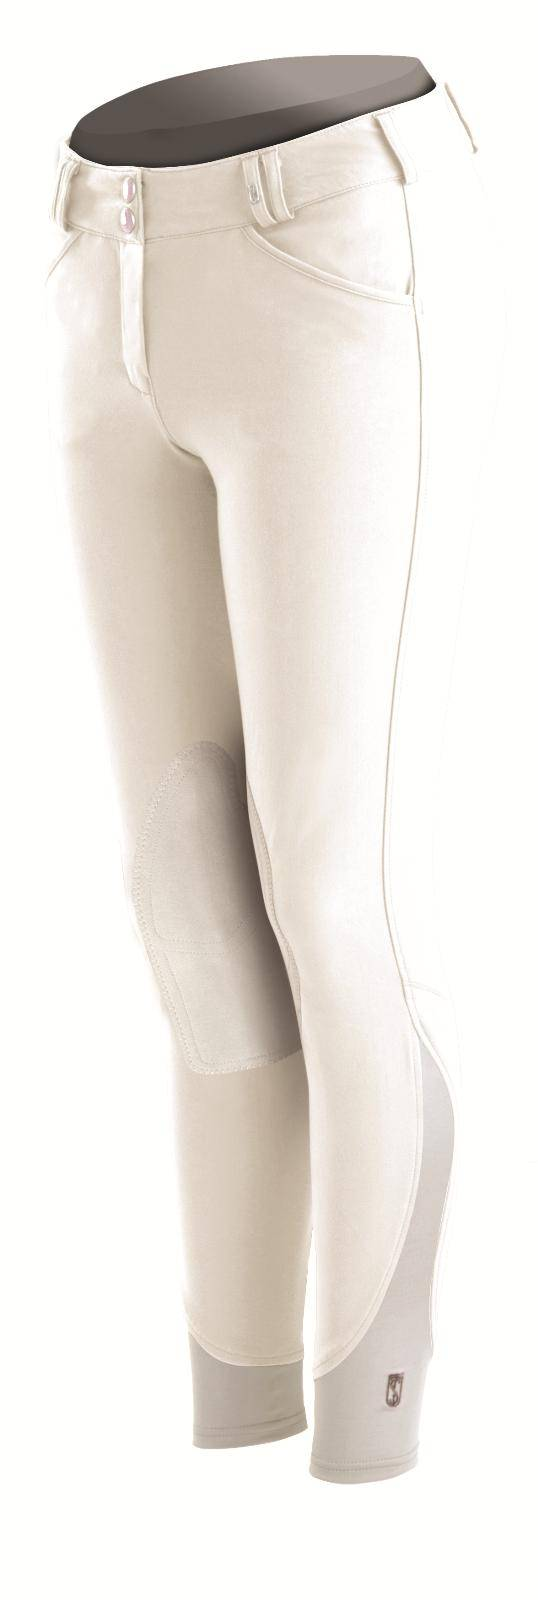 Tredstep Ireland 4th Symphony Ladies' Nero Knee Patch Breeches